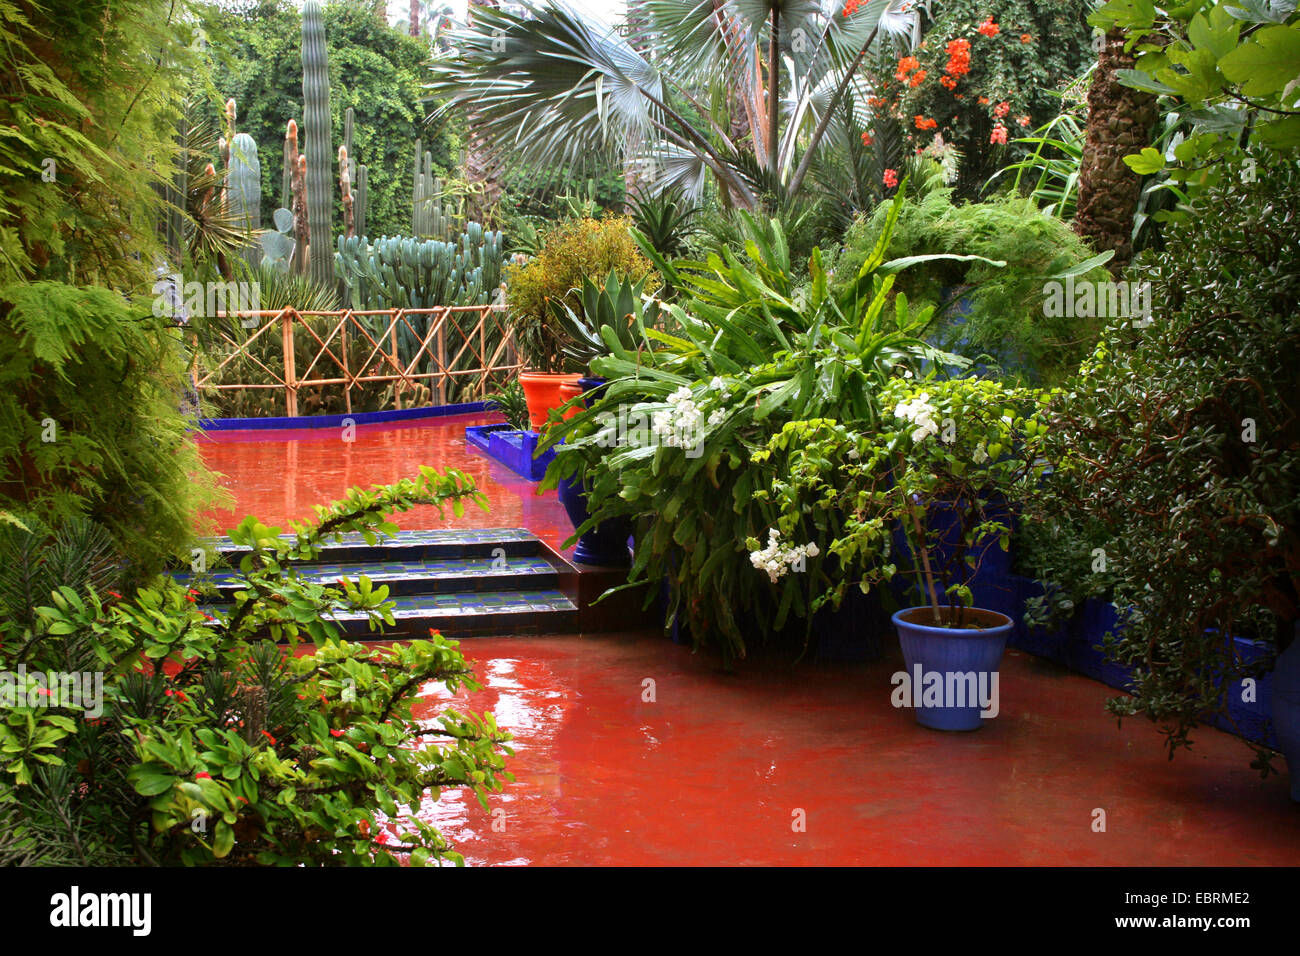 Jardin majorelle botanical garden by yves saint laurent for Jardin ysl marrakech